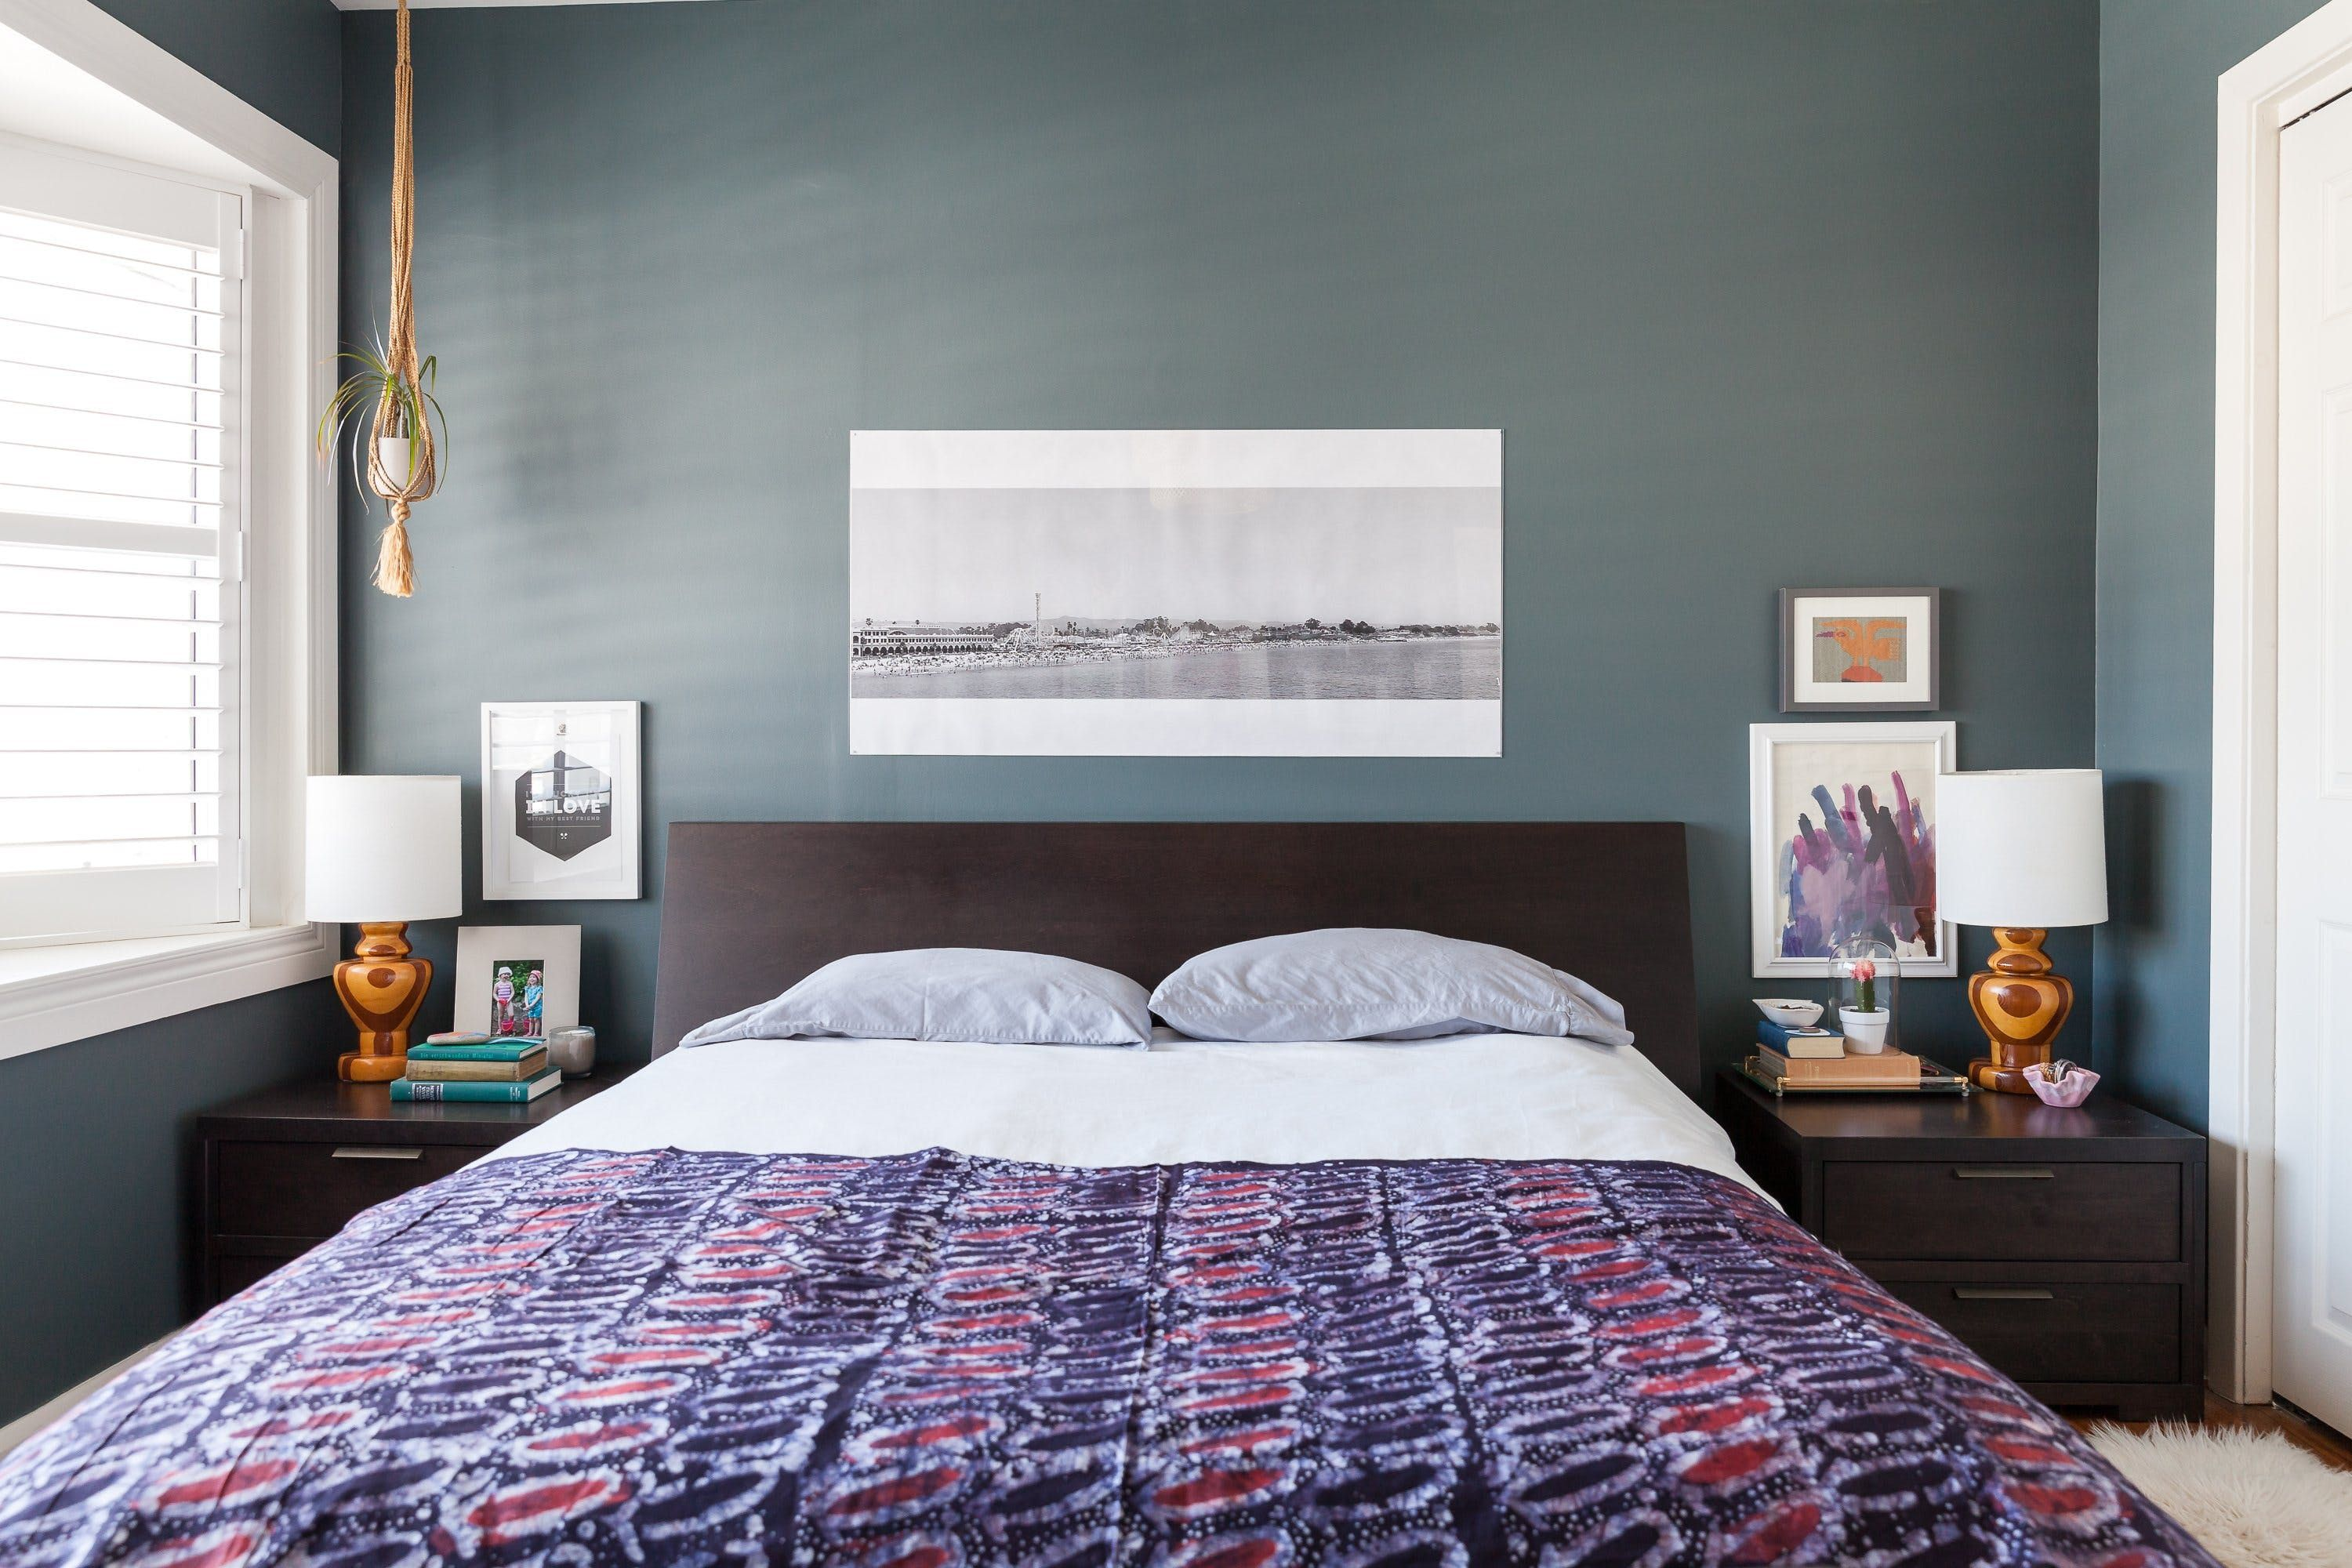 How to NAIL the Perfect Placement When Hanging Art Above